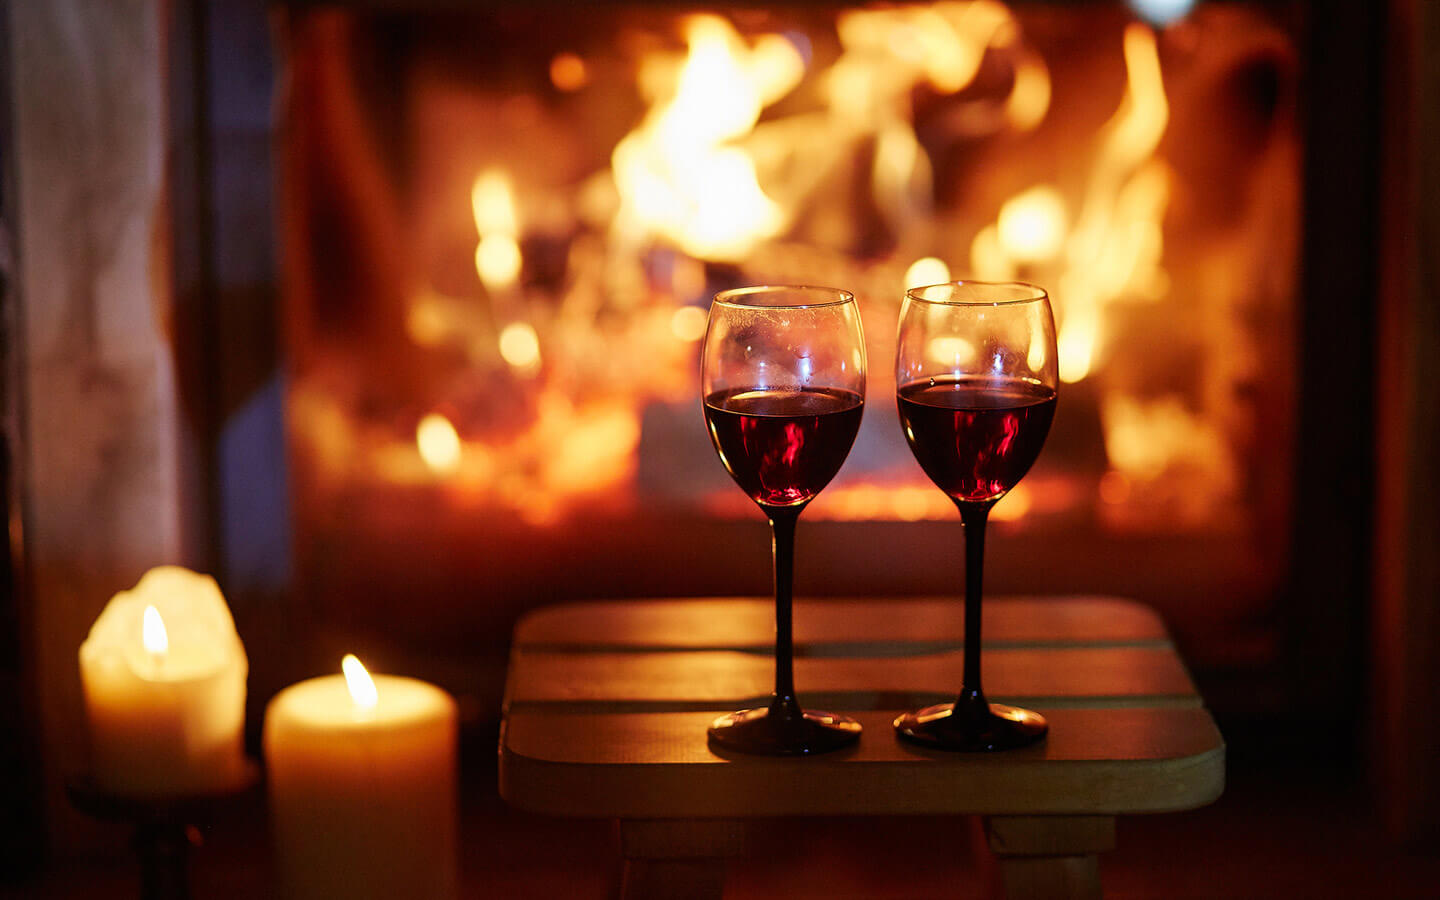 2 wine glasses in front of a fireplace with candles